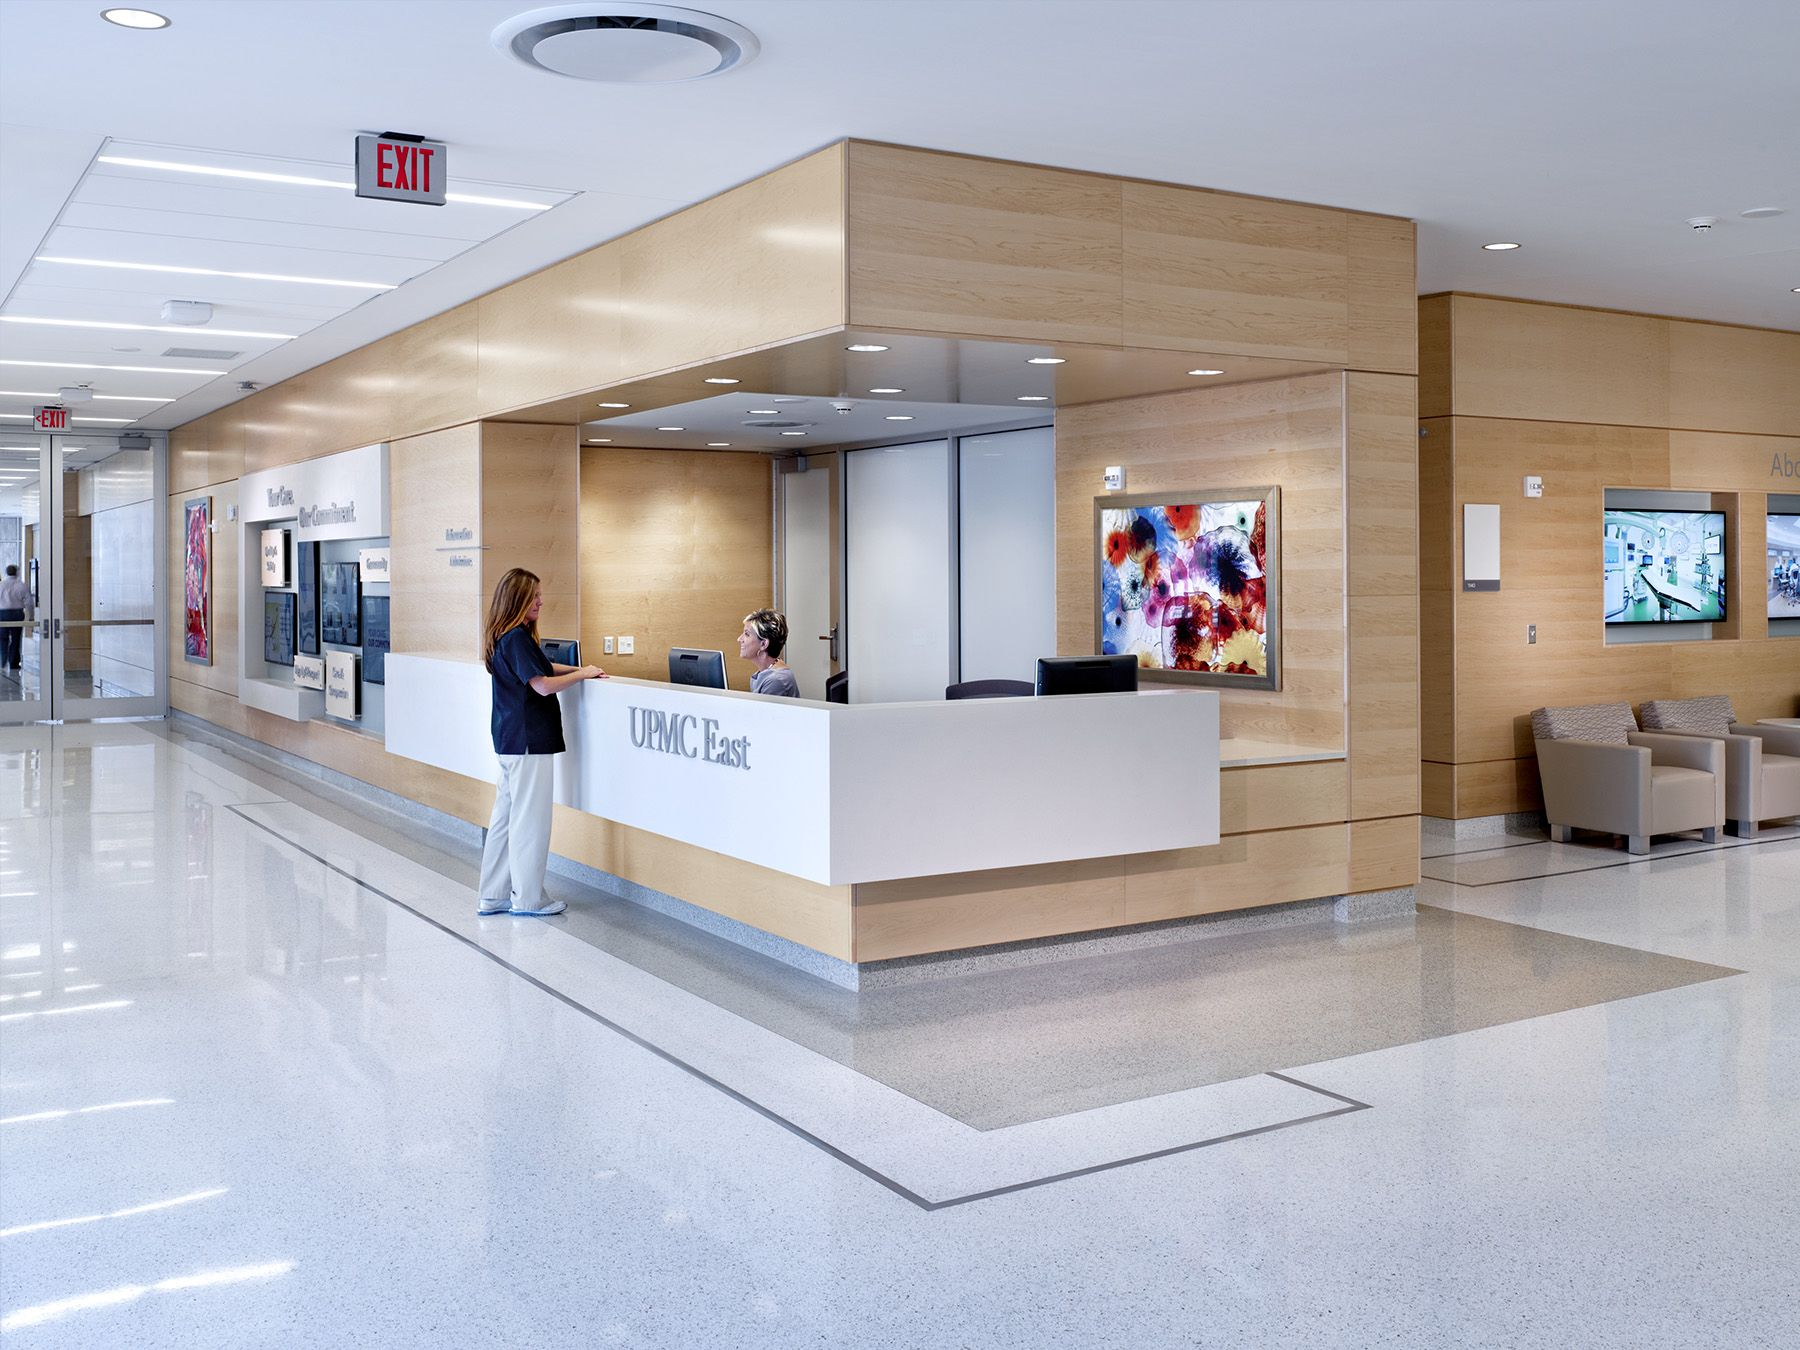 New Hospital And Parking Garage Monroeville Pa The Upmc East Hospital Rests On A Greyfiled Hospital Interior Design Healthcare Interior Design Hospital Design